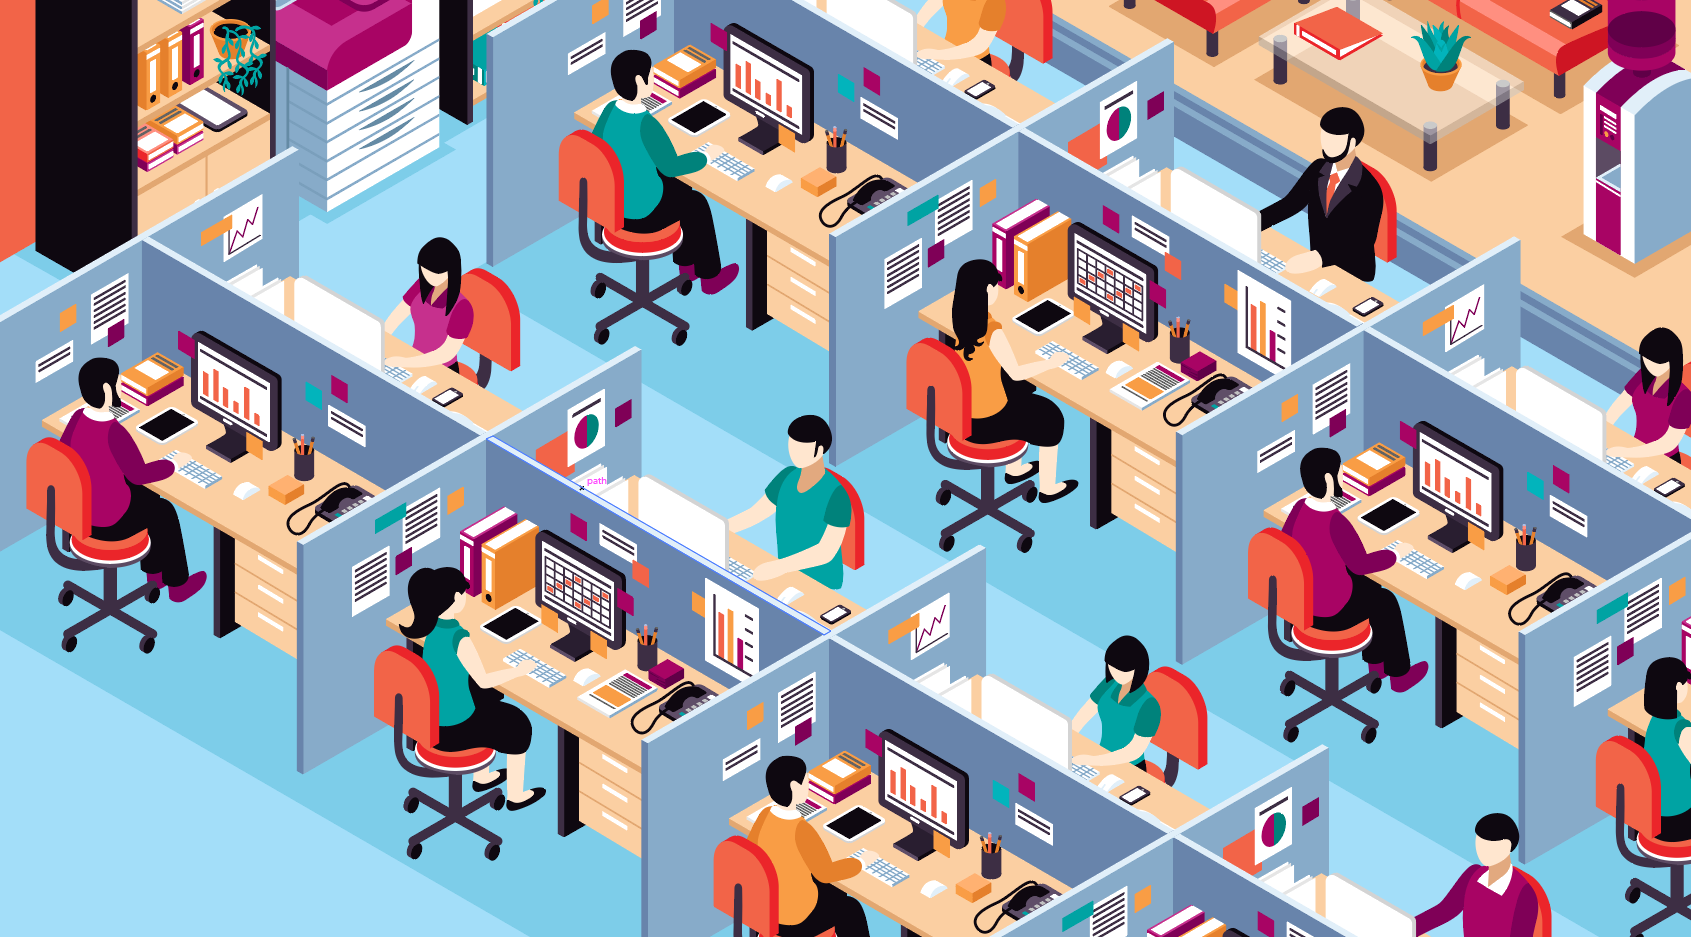 People in an office working together safely with separation between them